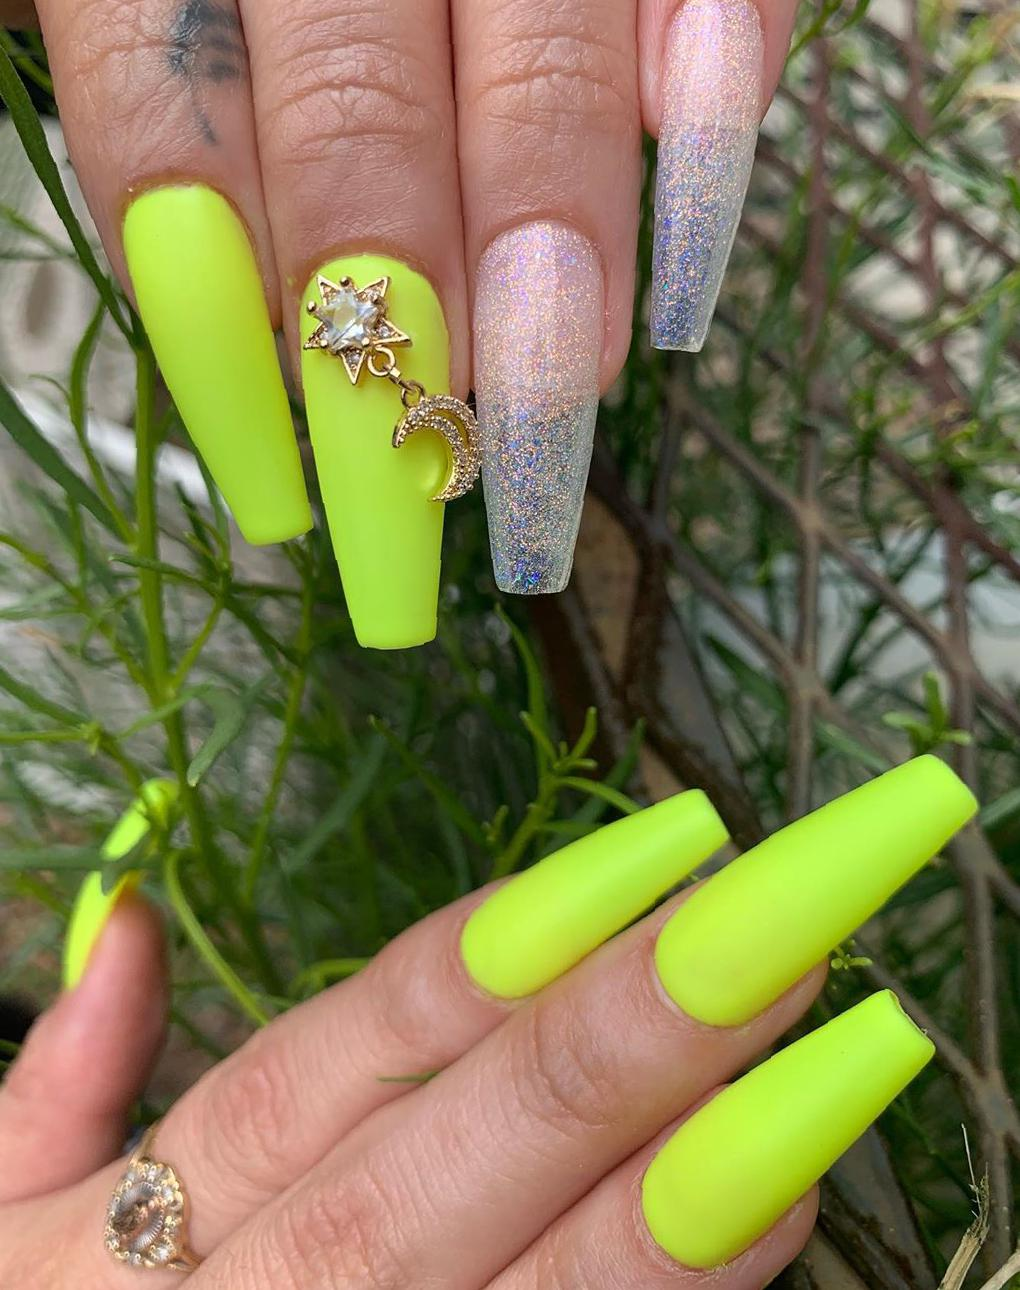 37 Stunning Trend Nails Design Ideas For a Summer Coffin Nails 2020 coffin nails,long coffin nails,coffin nails 2020,coffin nails trendy,summer nails ideas,coffin nails with glitter,cute coffin nails,bold coffin nails designs